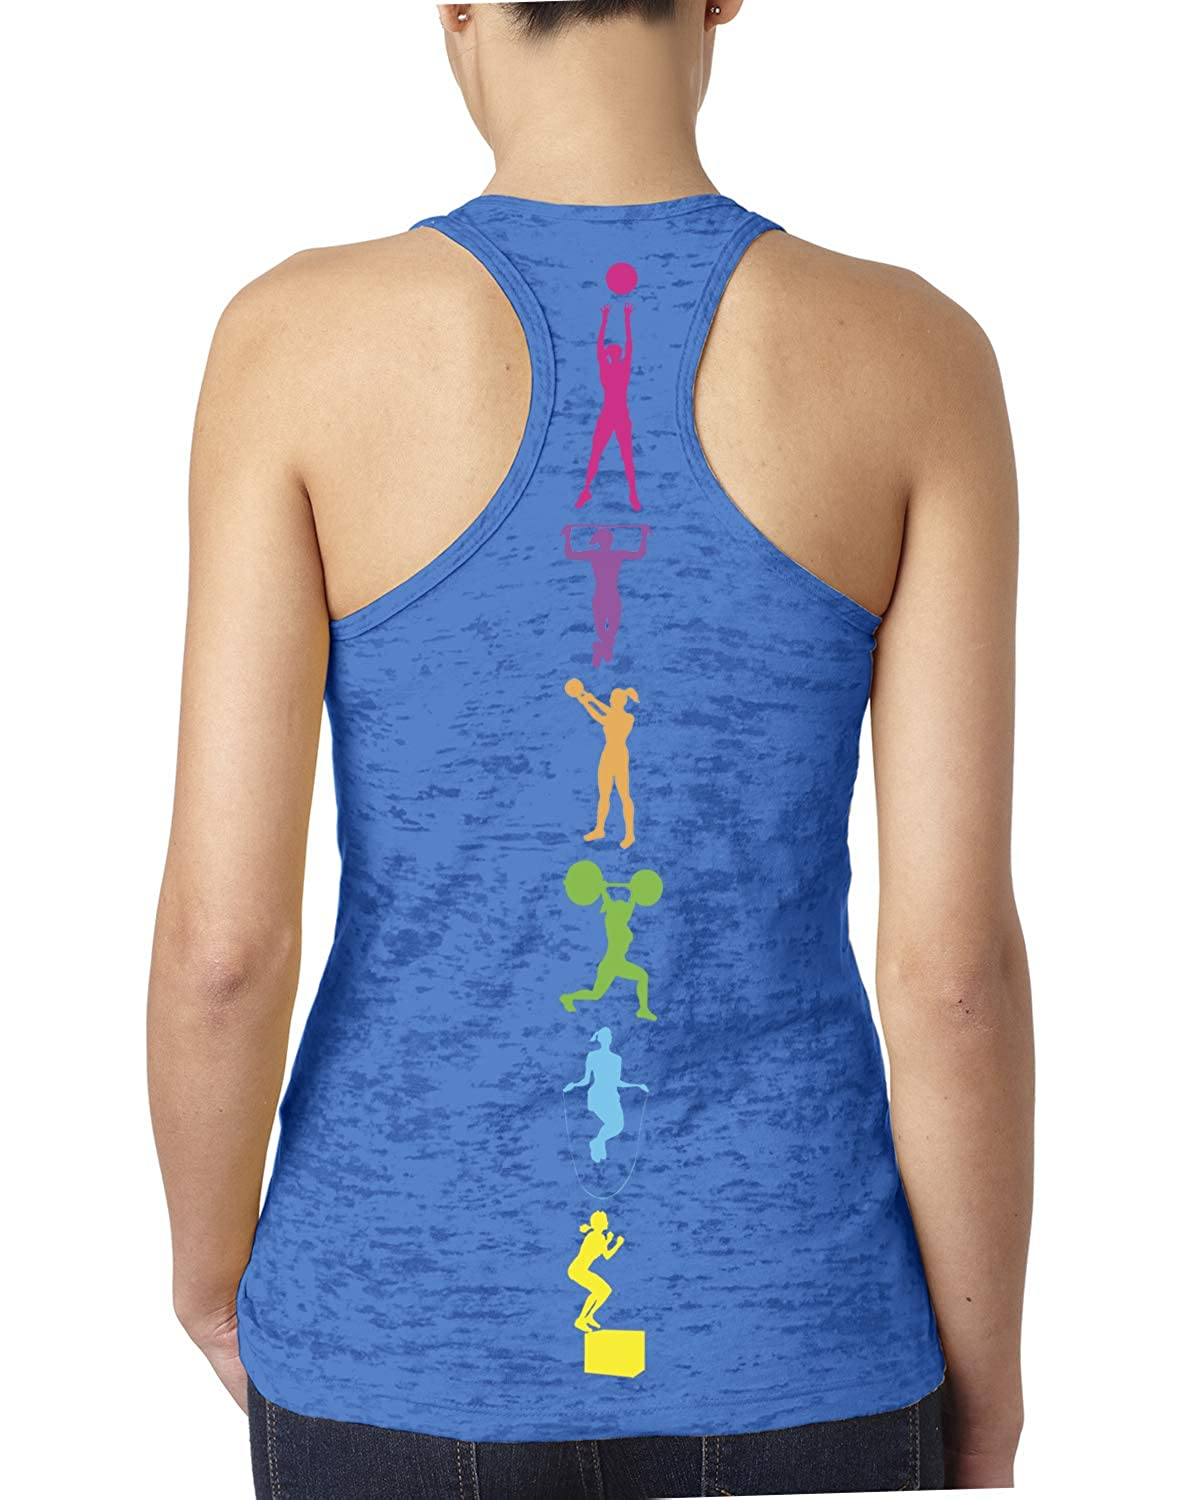 Womens Colorful Workout Lifting Fitness Moves Burnout Tank Top